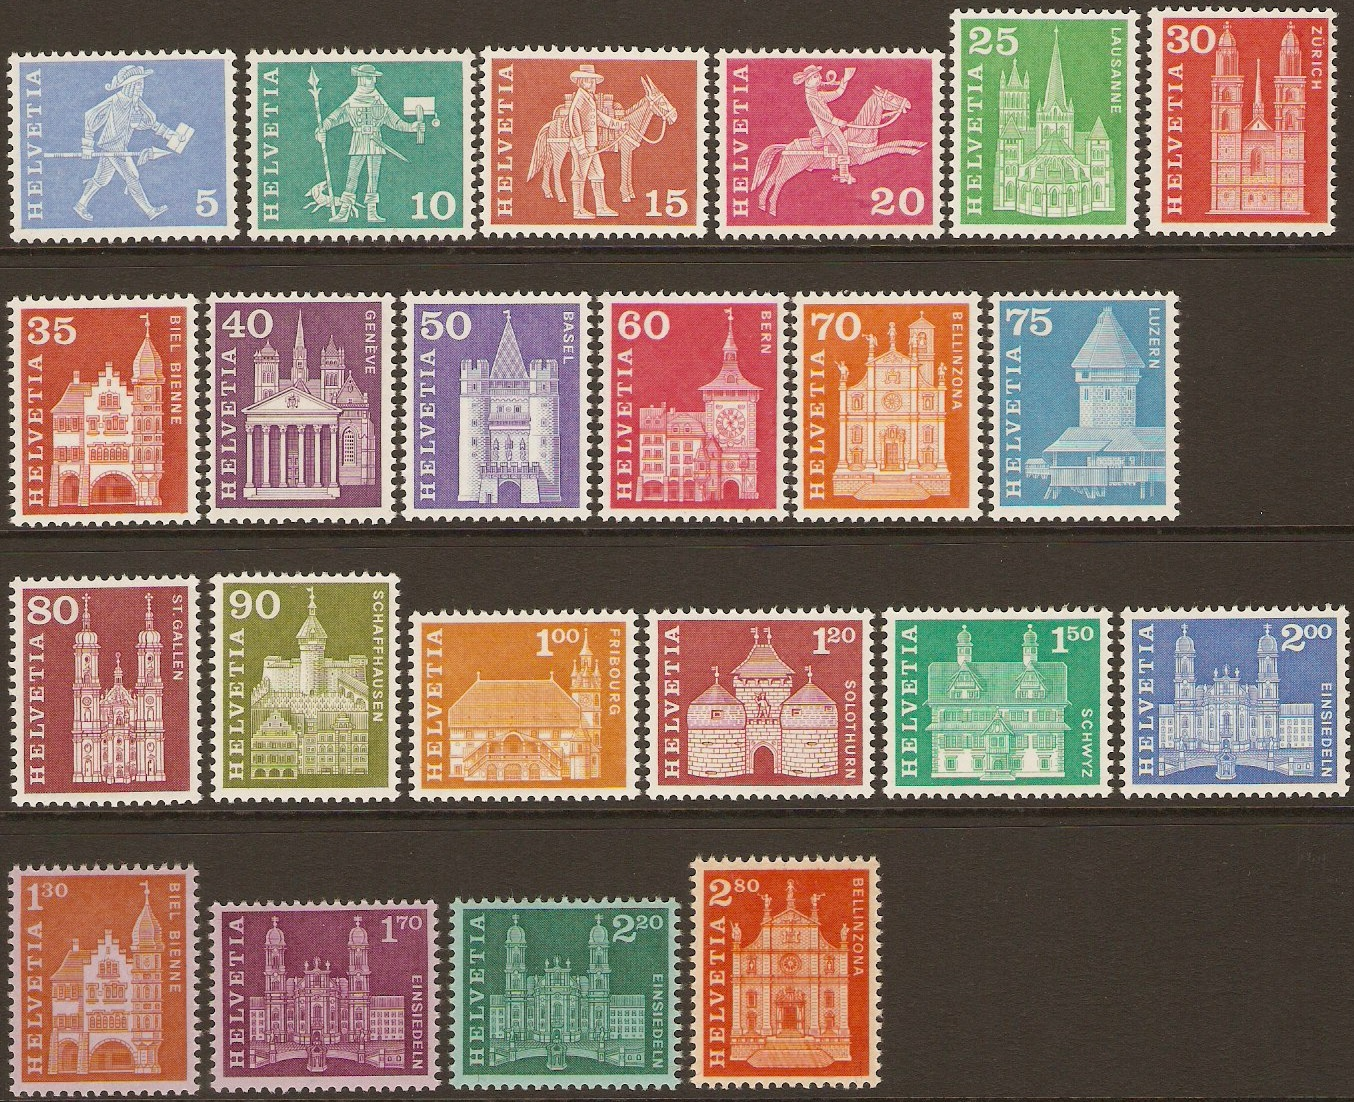 Switzerland 1960 Post History and Architecture Set. SG614-SG635.